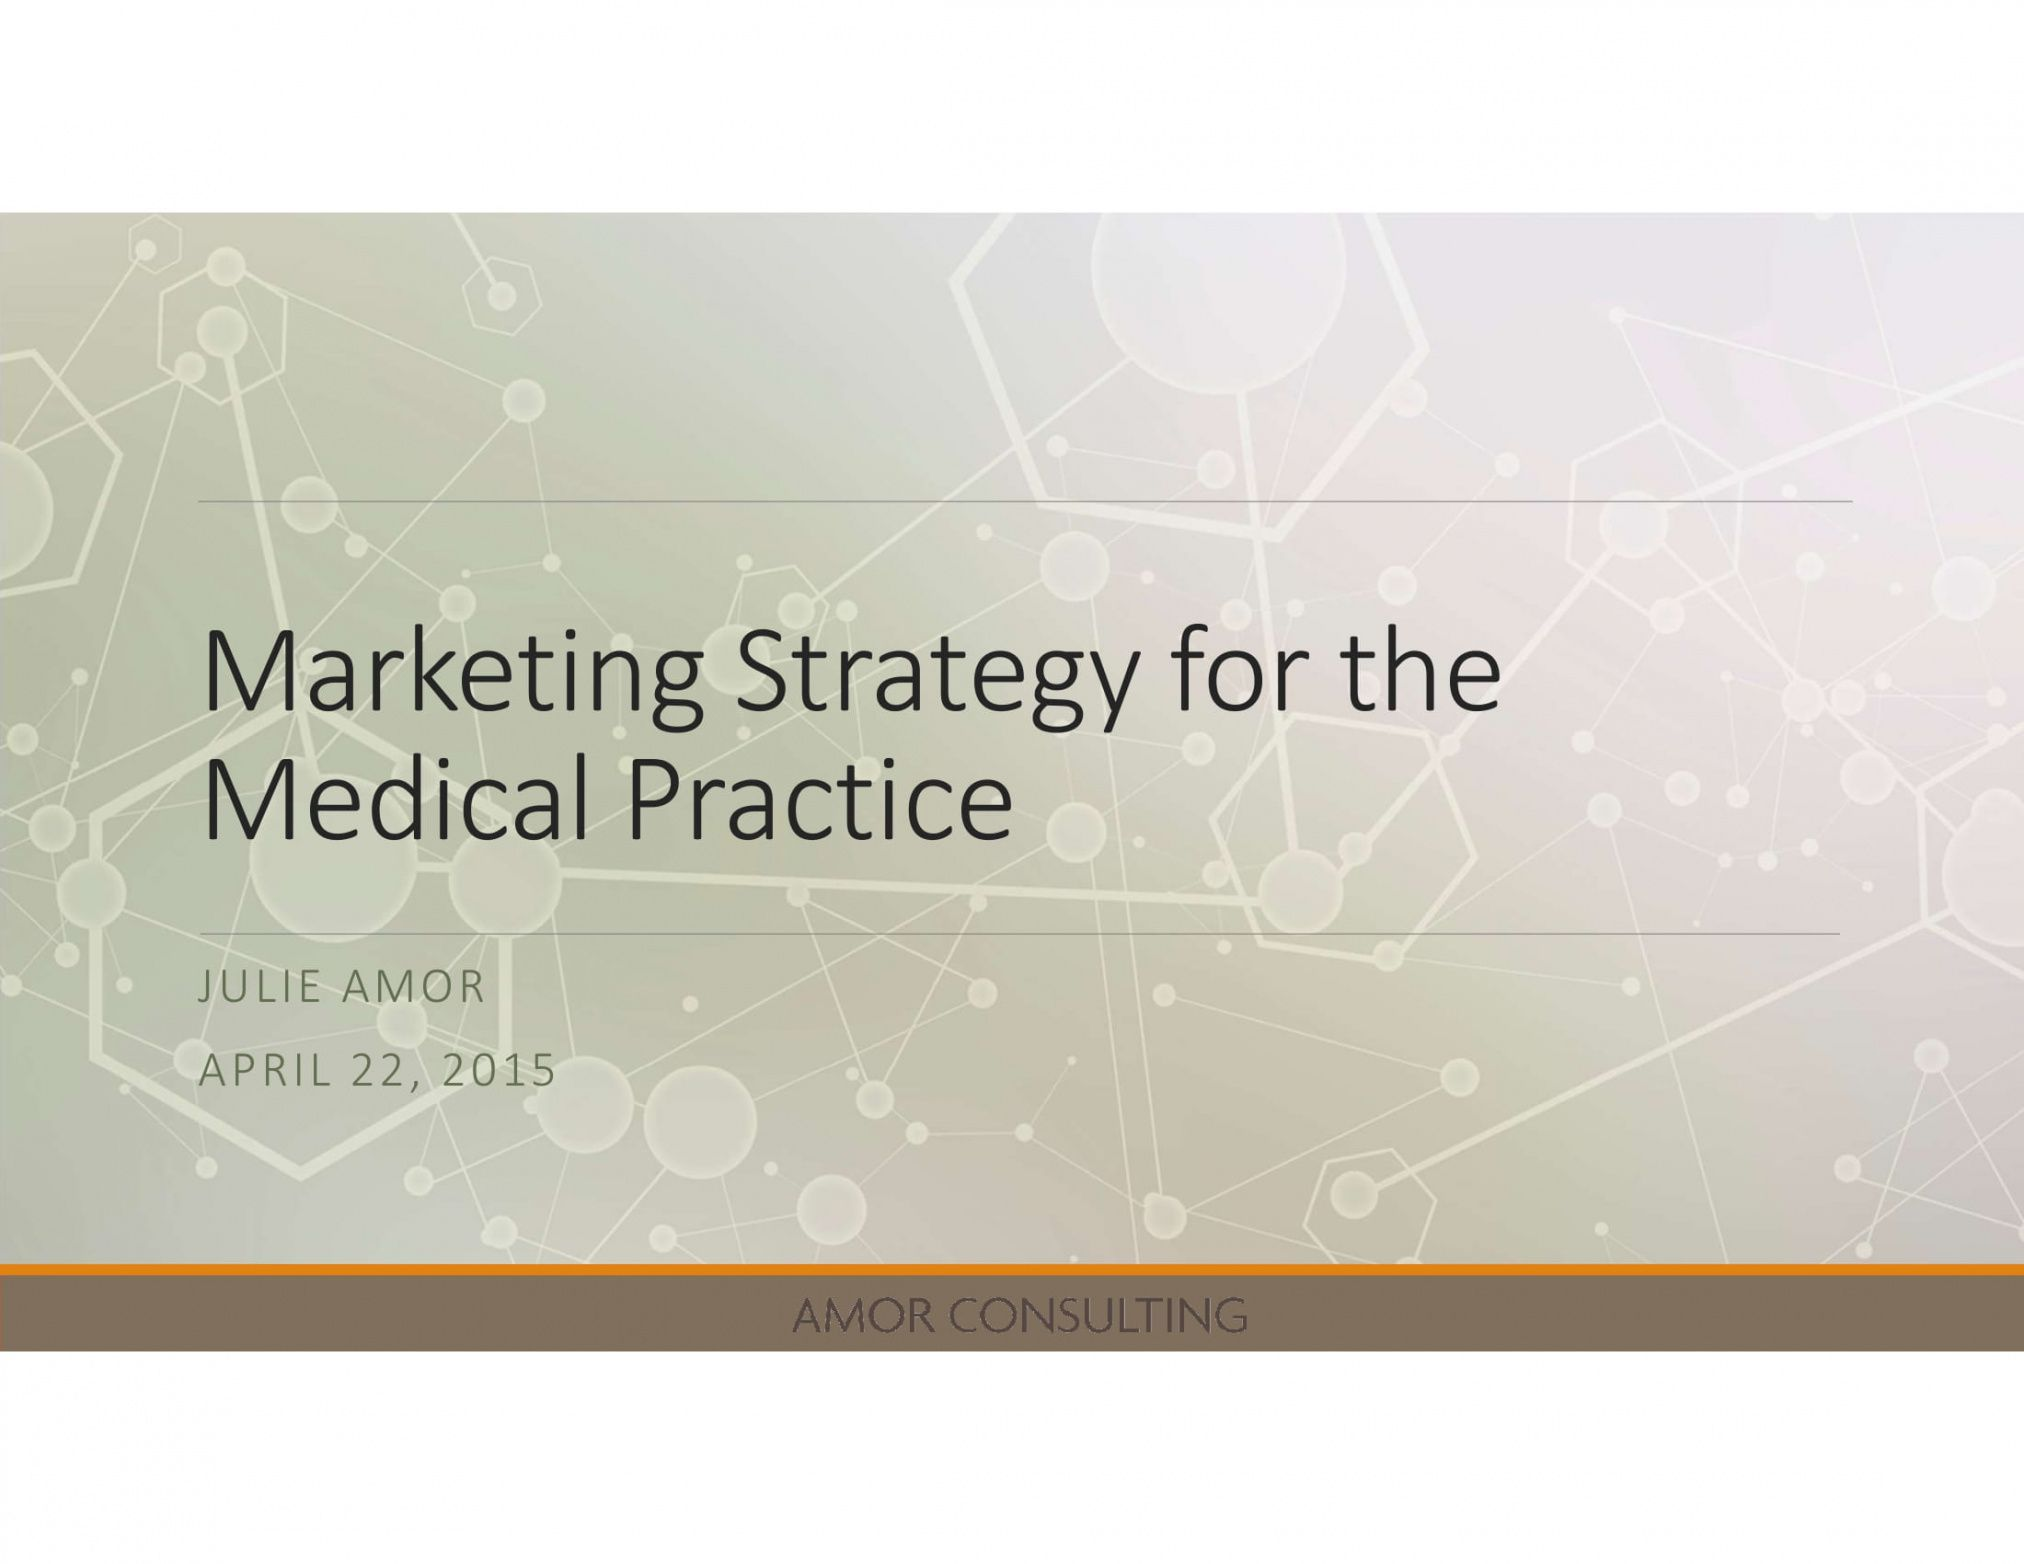 Get Our Image Of Medical Practice Marketing Plan Template For Free Medical Practice Marketing Marketing Plan Template Marketing Plan Example Medical practice marketing plan template